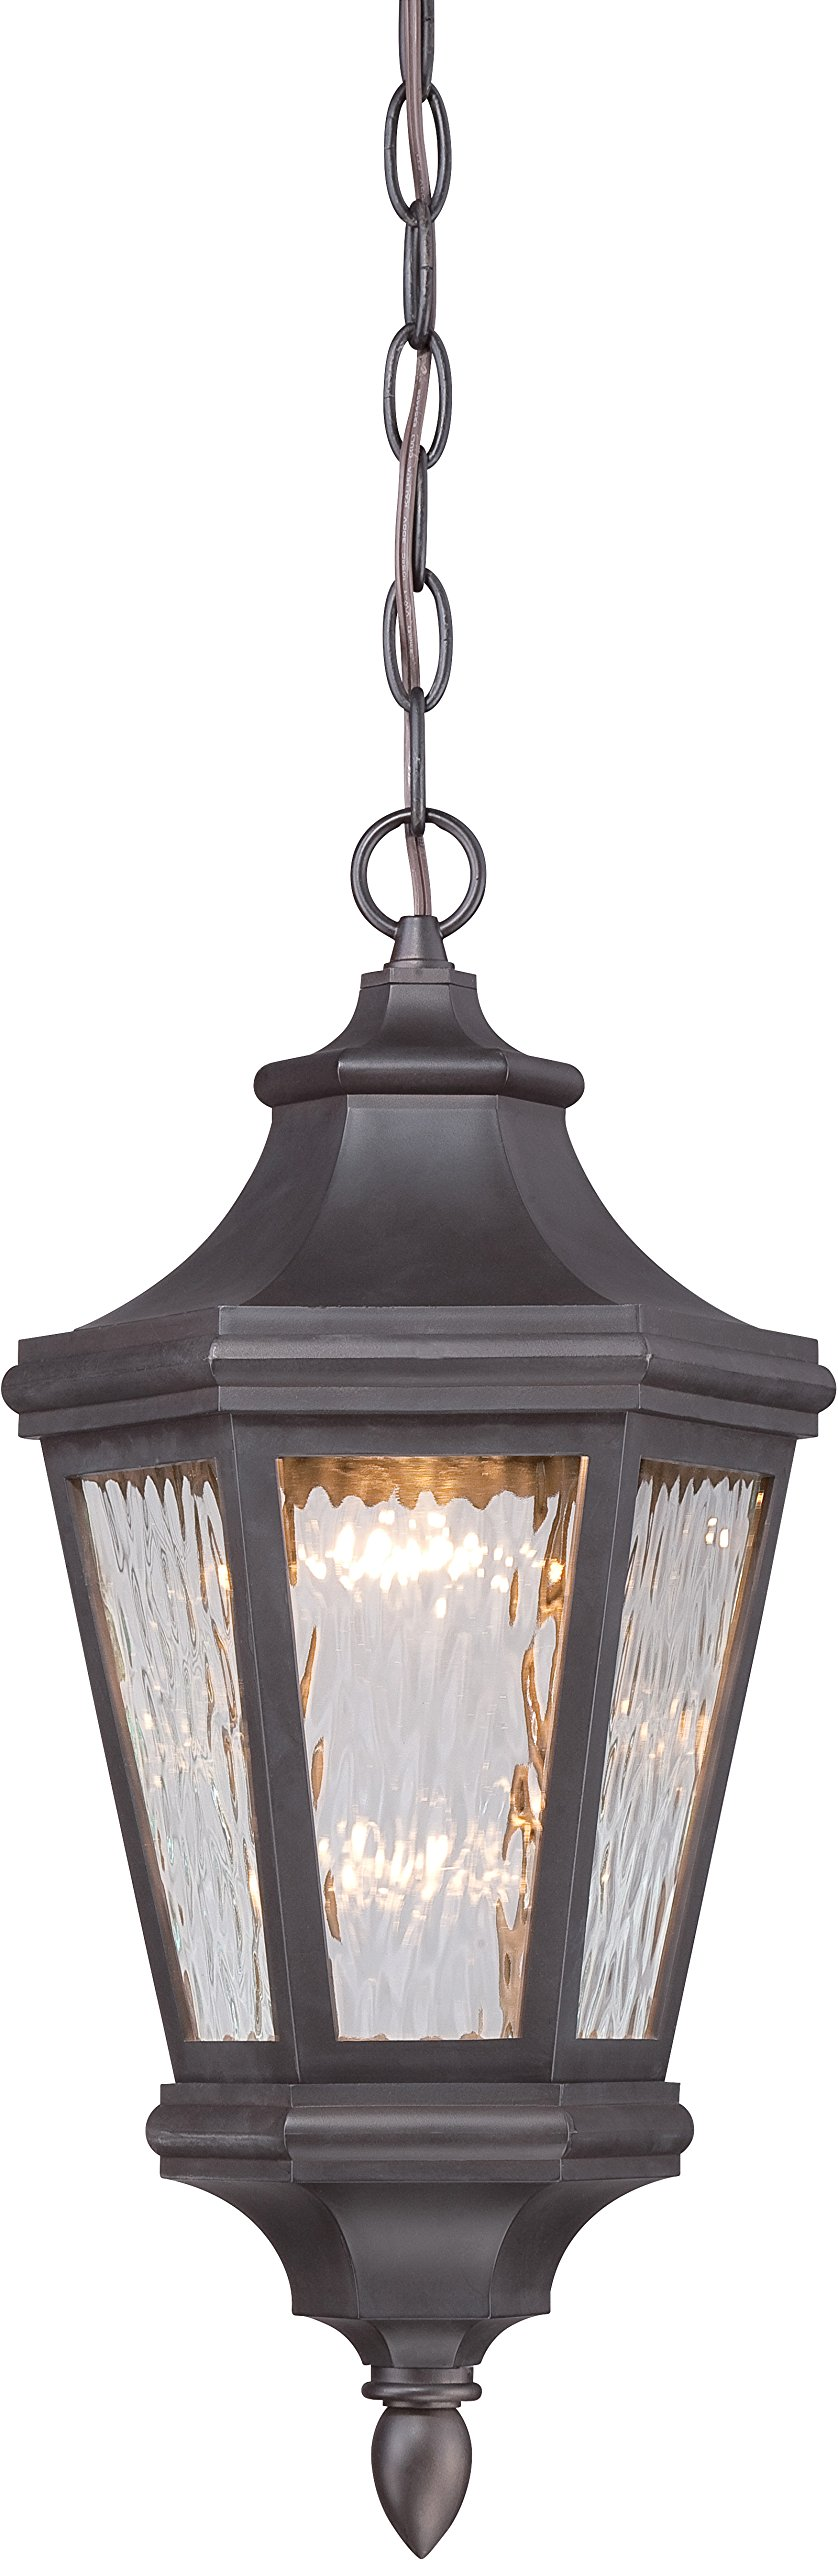 Minka Lavery Outdoor Ceiling Lighting 71824-143-L Hanford Pointe LED Pendant, Oil Rubbed Bronze